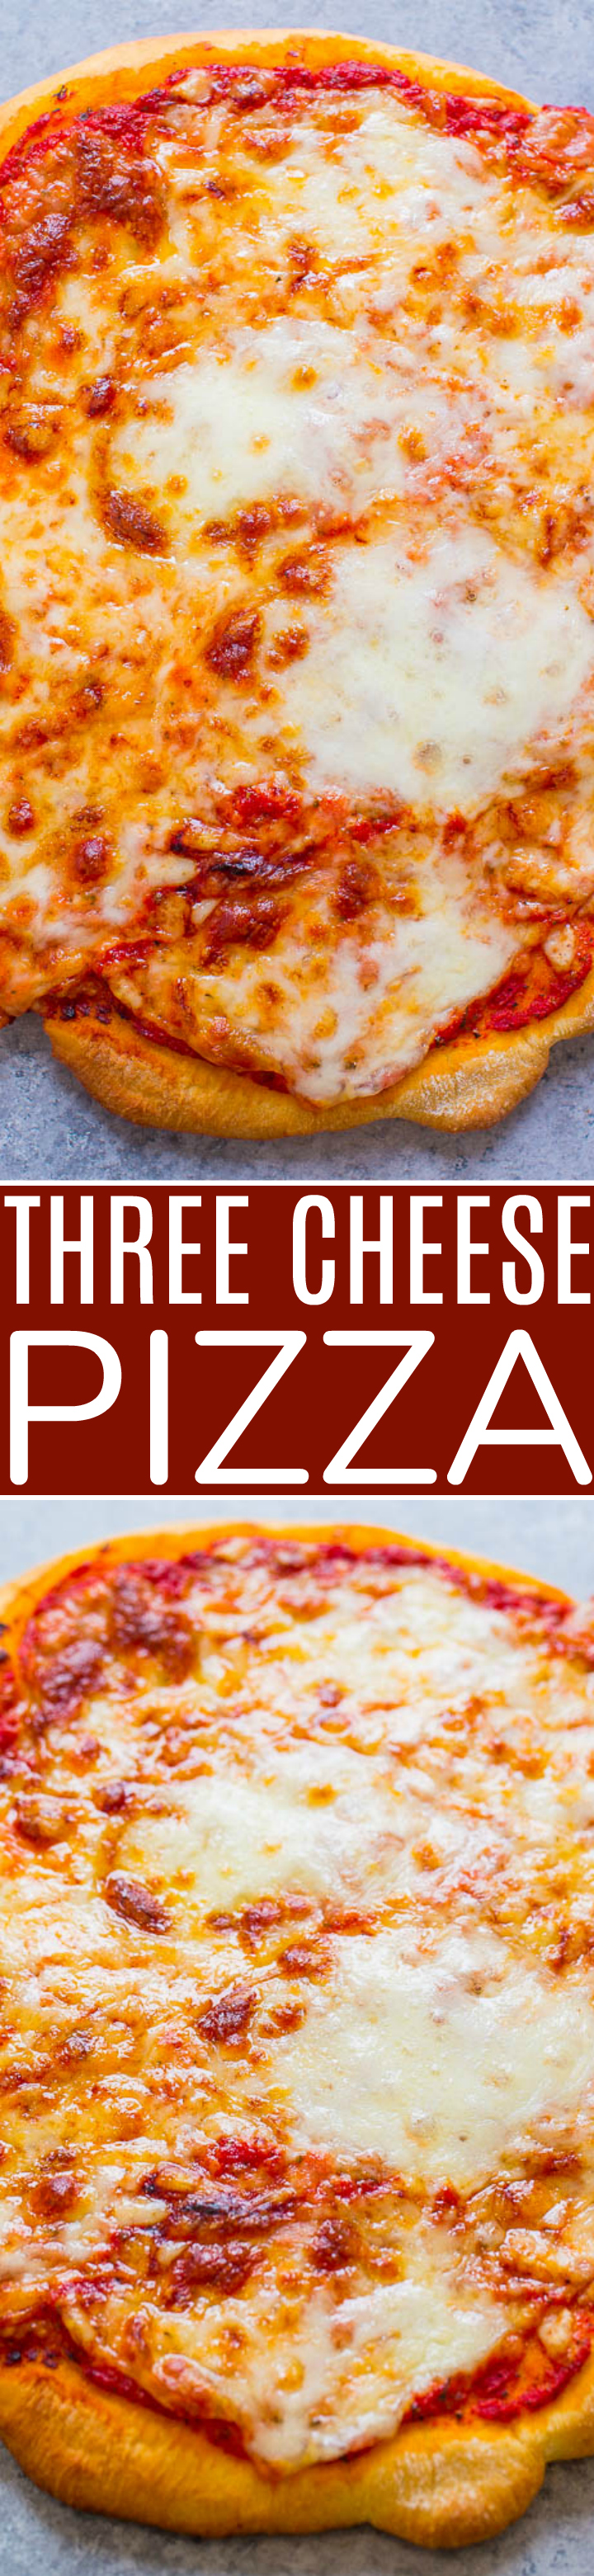 Three Cheese Pizza - Homemade pizza is the BEST!! And where there are 3 cheeses involved, even better!! Fast, easy, and better than calling for pizza delivery!!